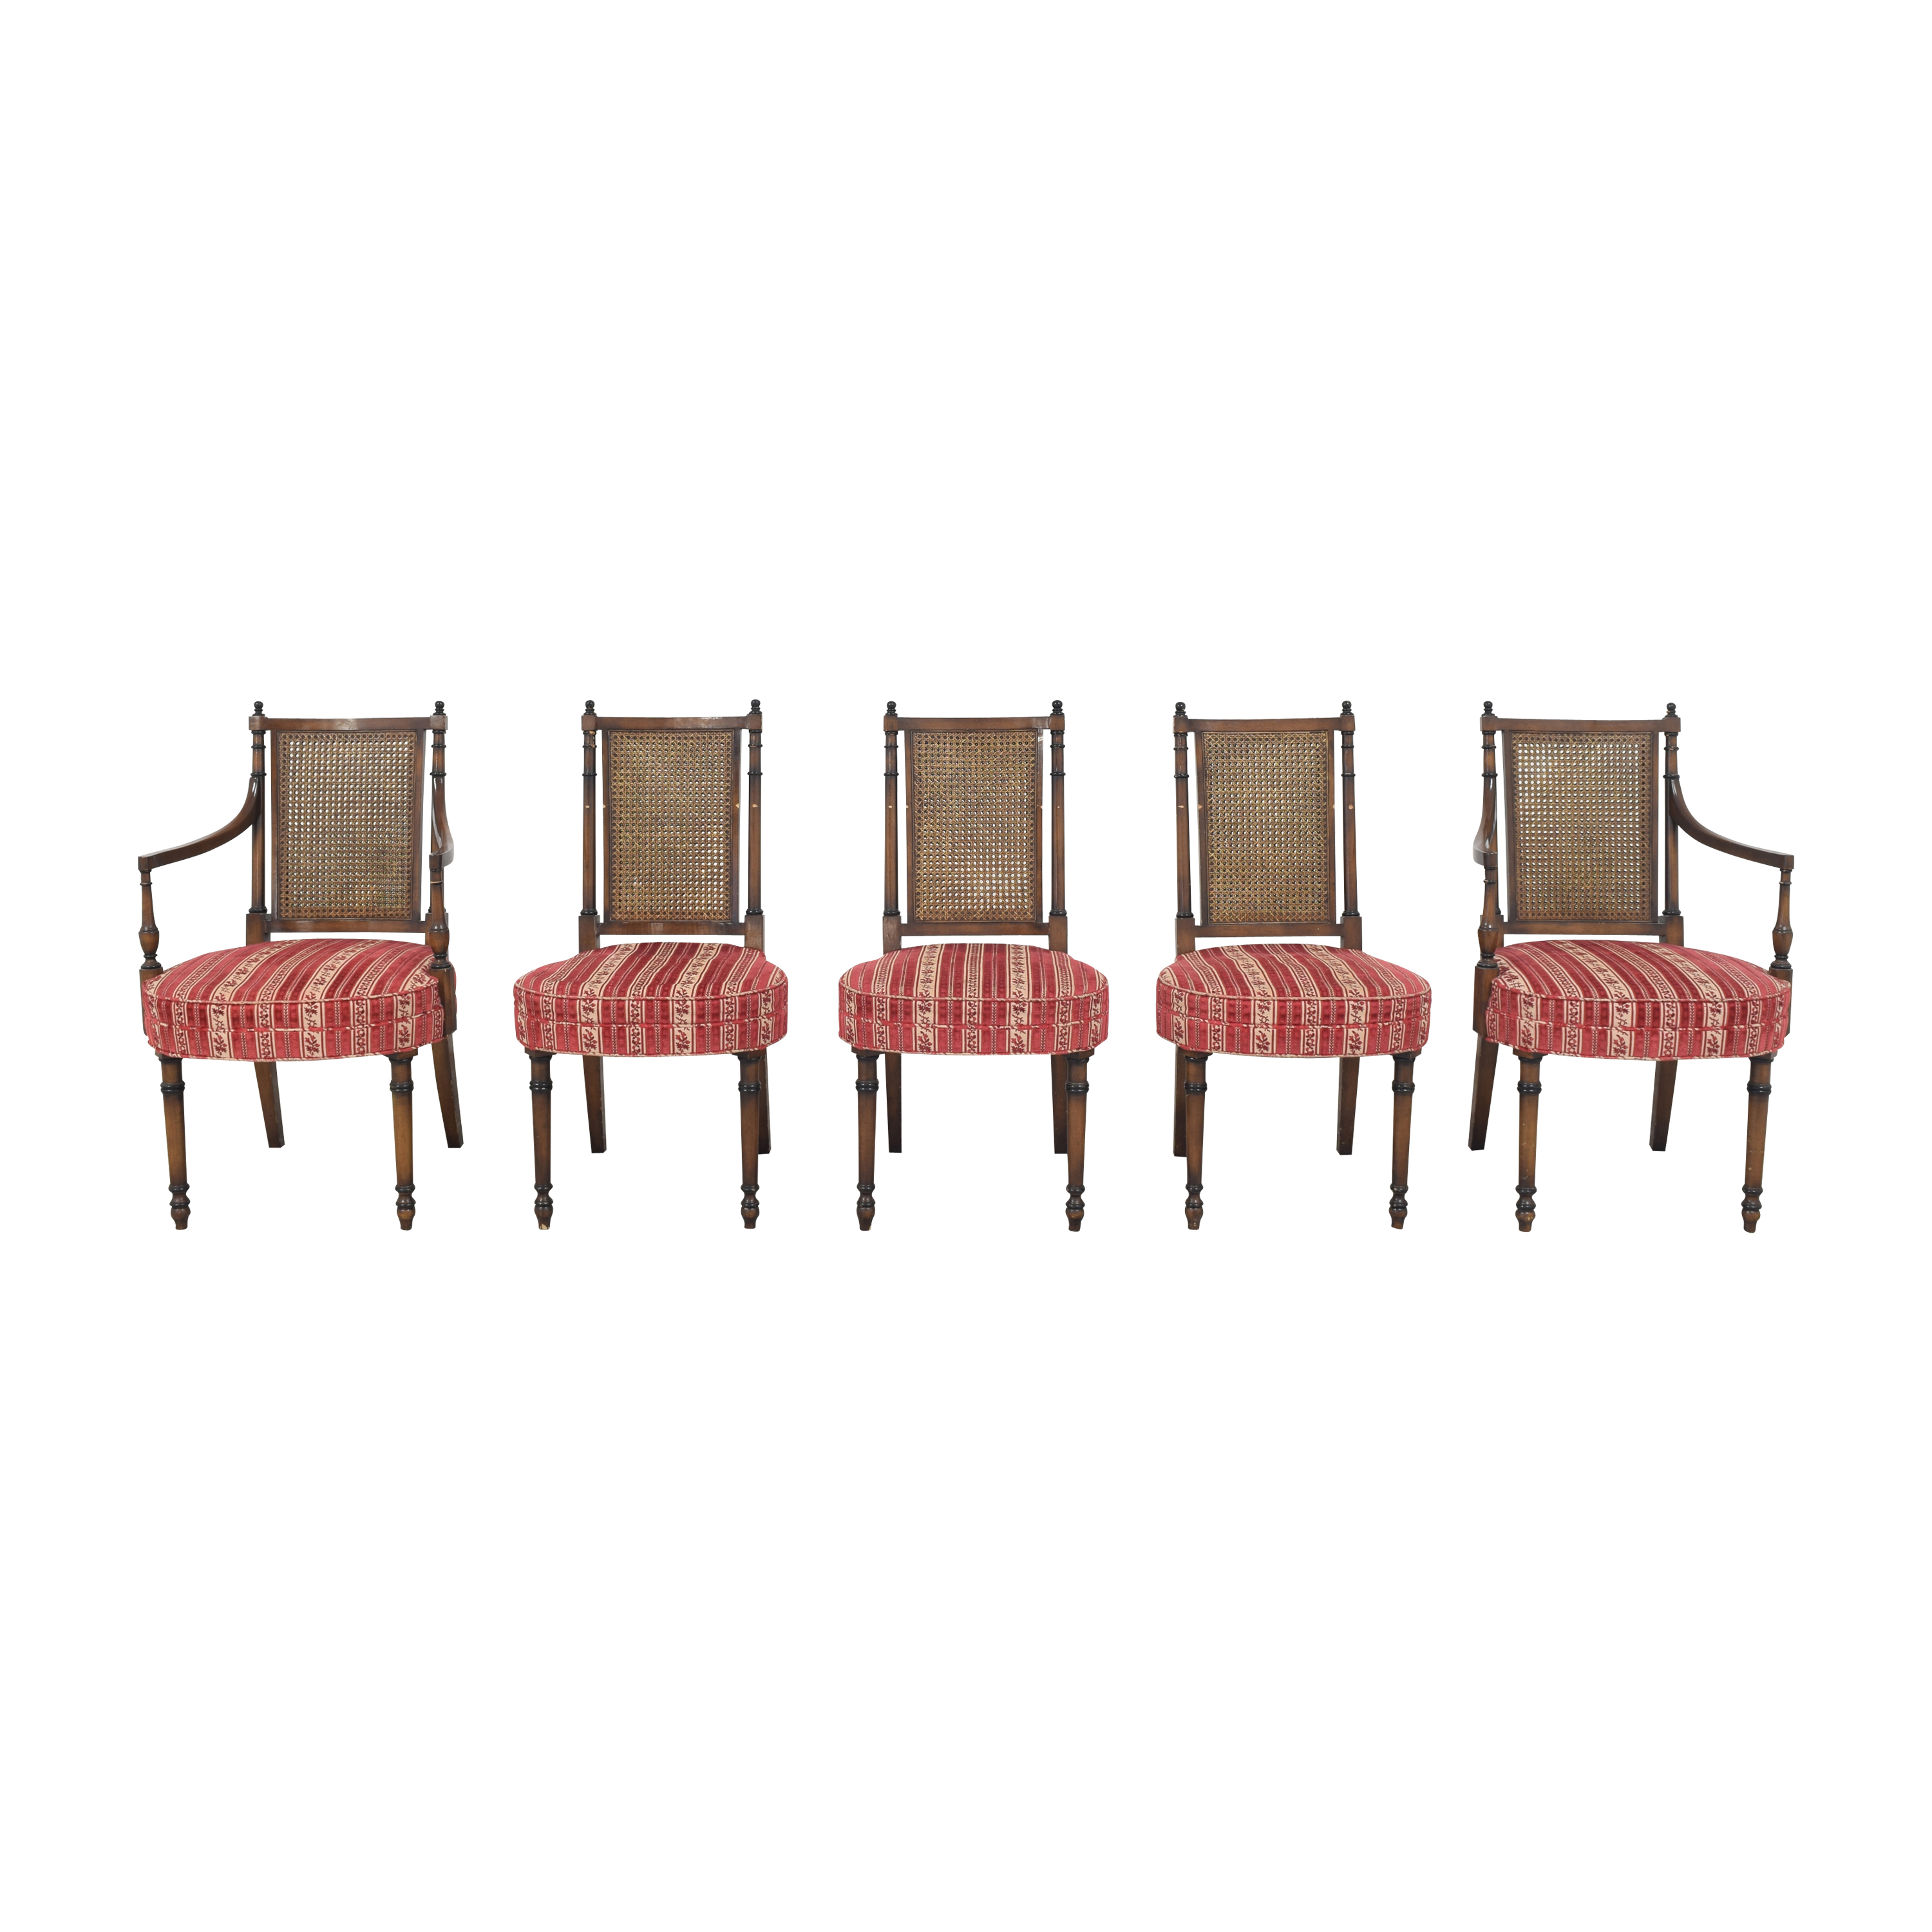 Vintage Upholstered Dining Chairs on sale